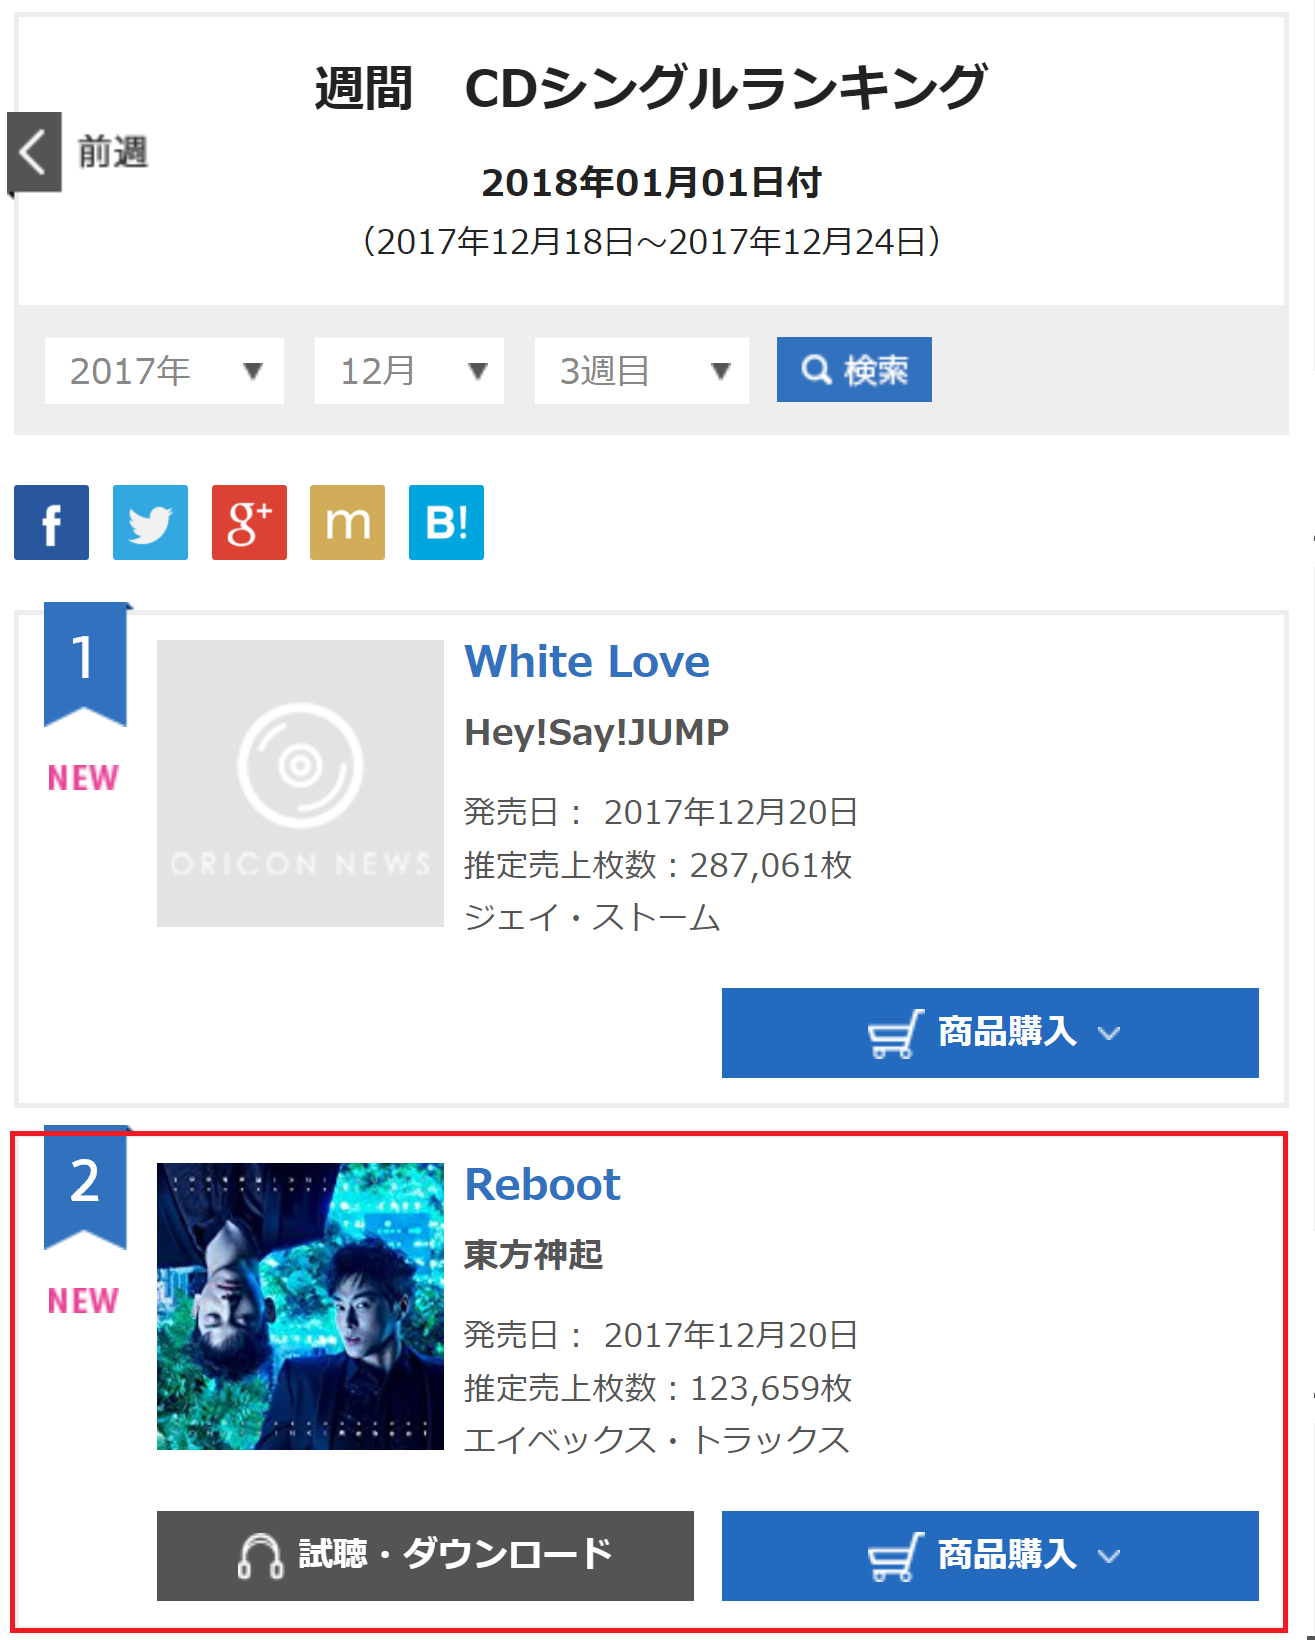 INFO] 171227 Oricon Weekly Singles for 1/1 (171218-24): No 2